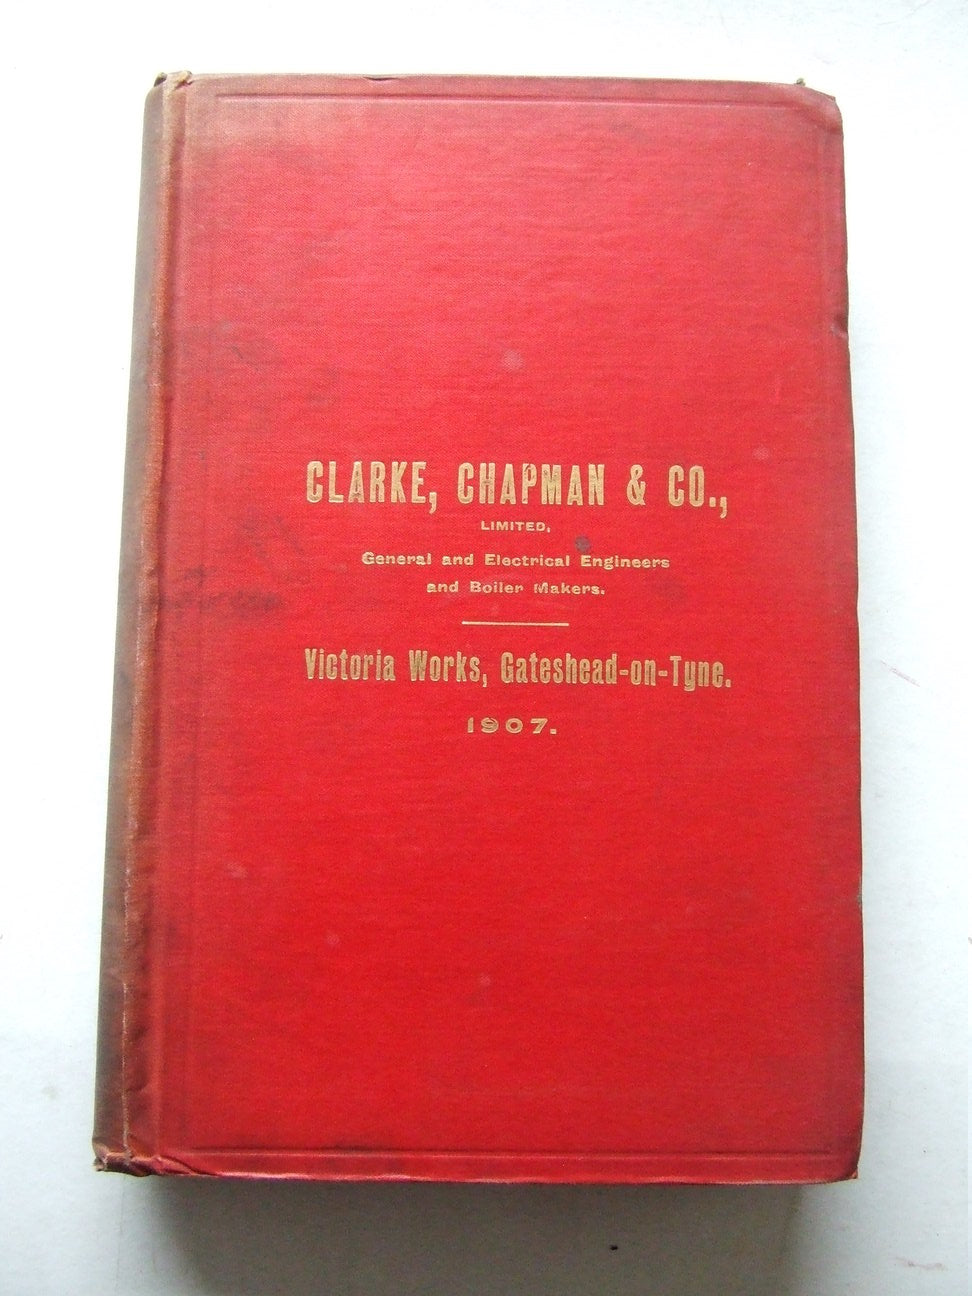 Clarke, Chapman & Co., Limited......Victoria Works, Gateshead-on-Tyne.